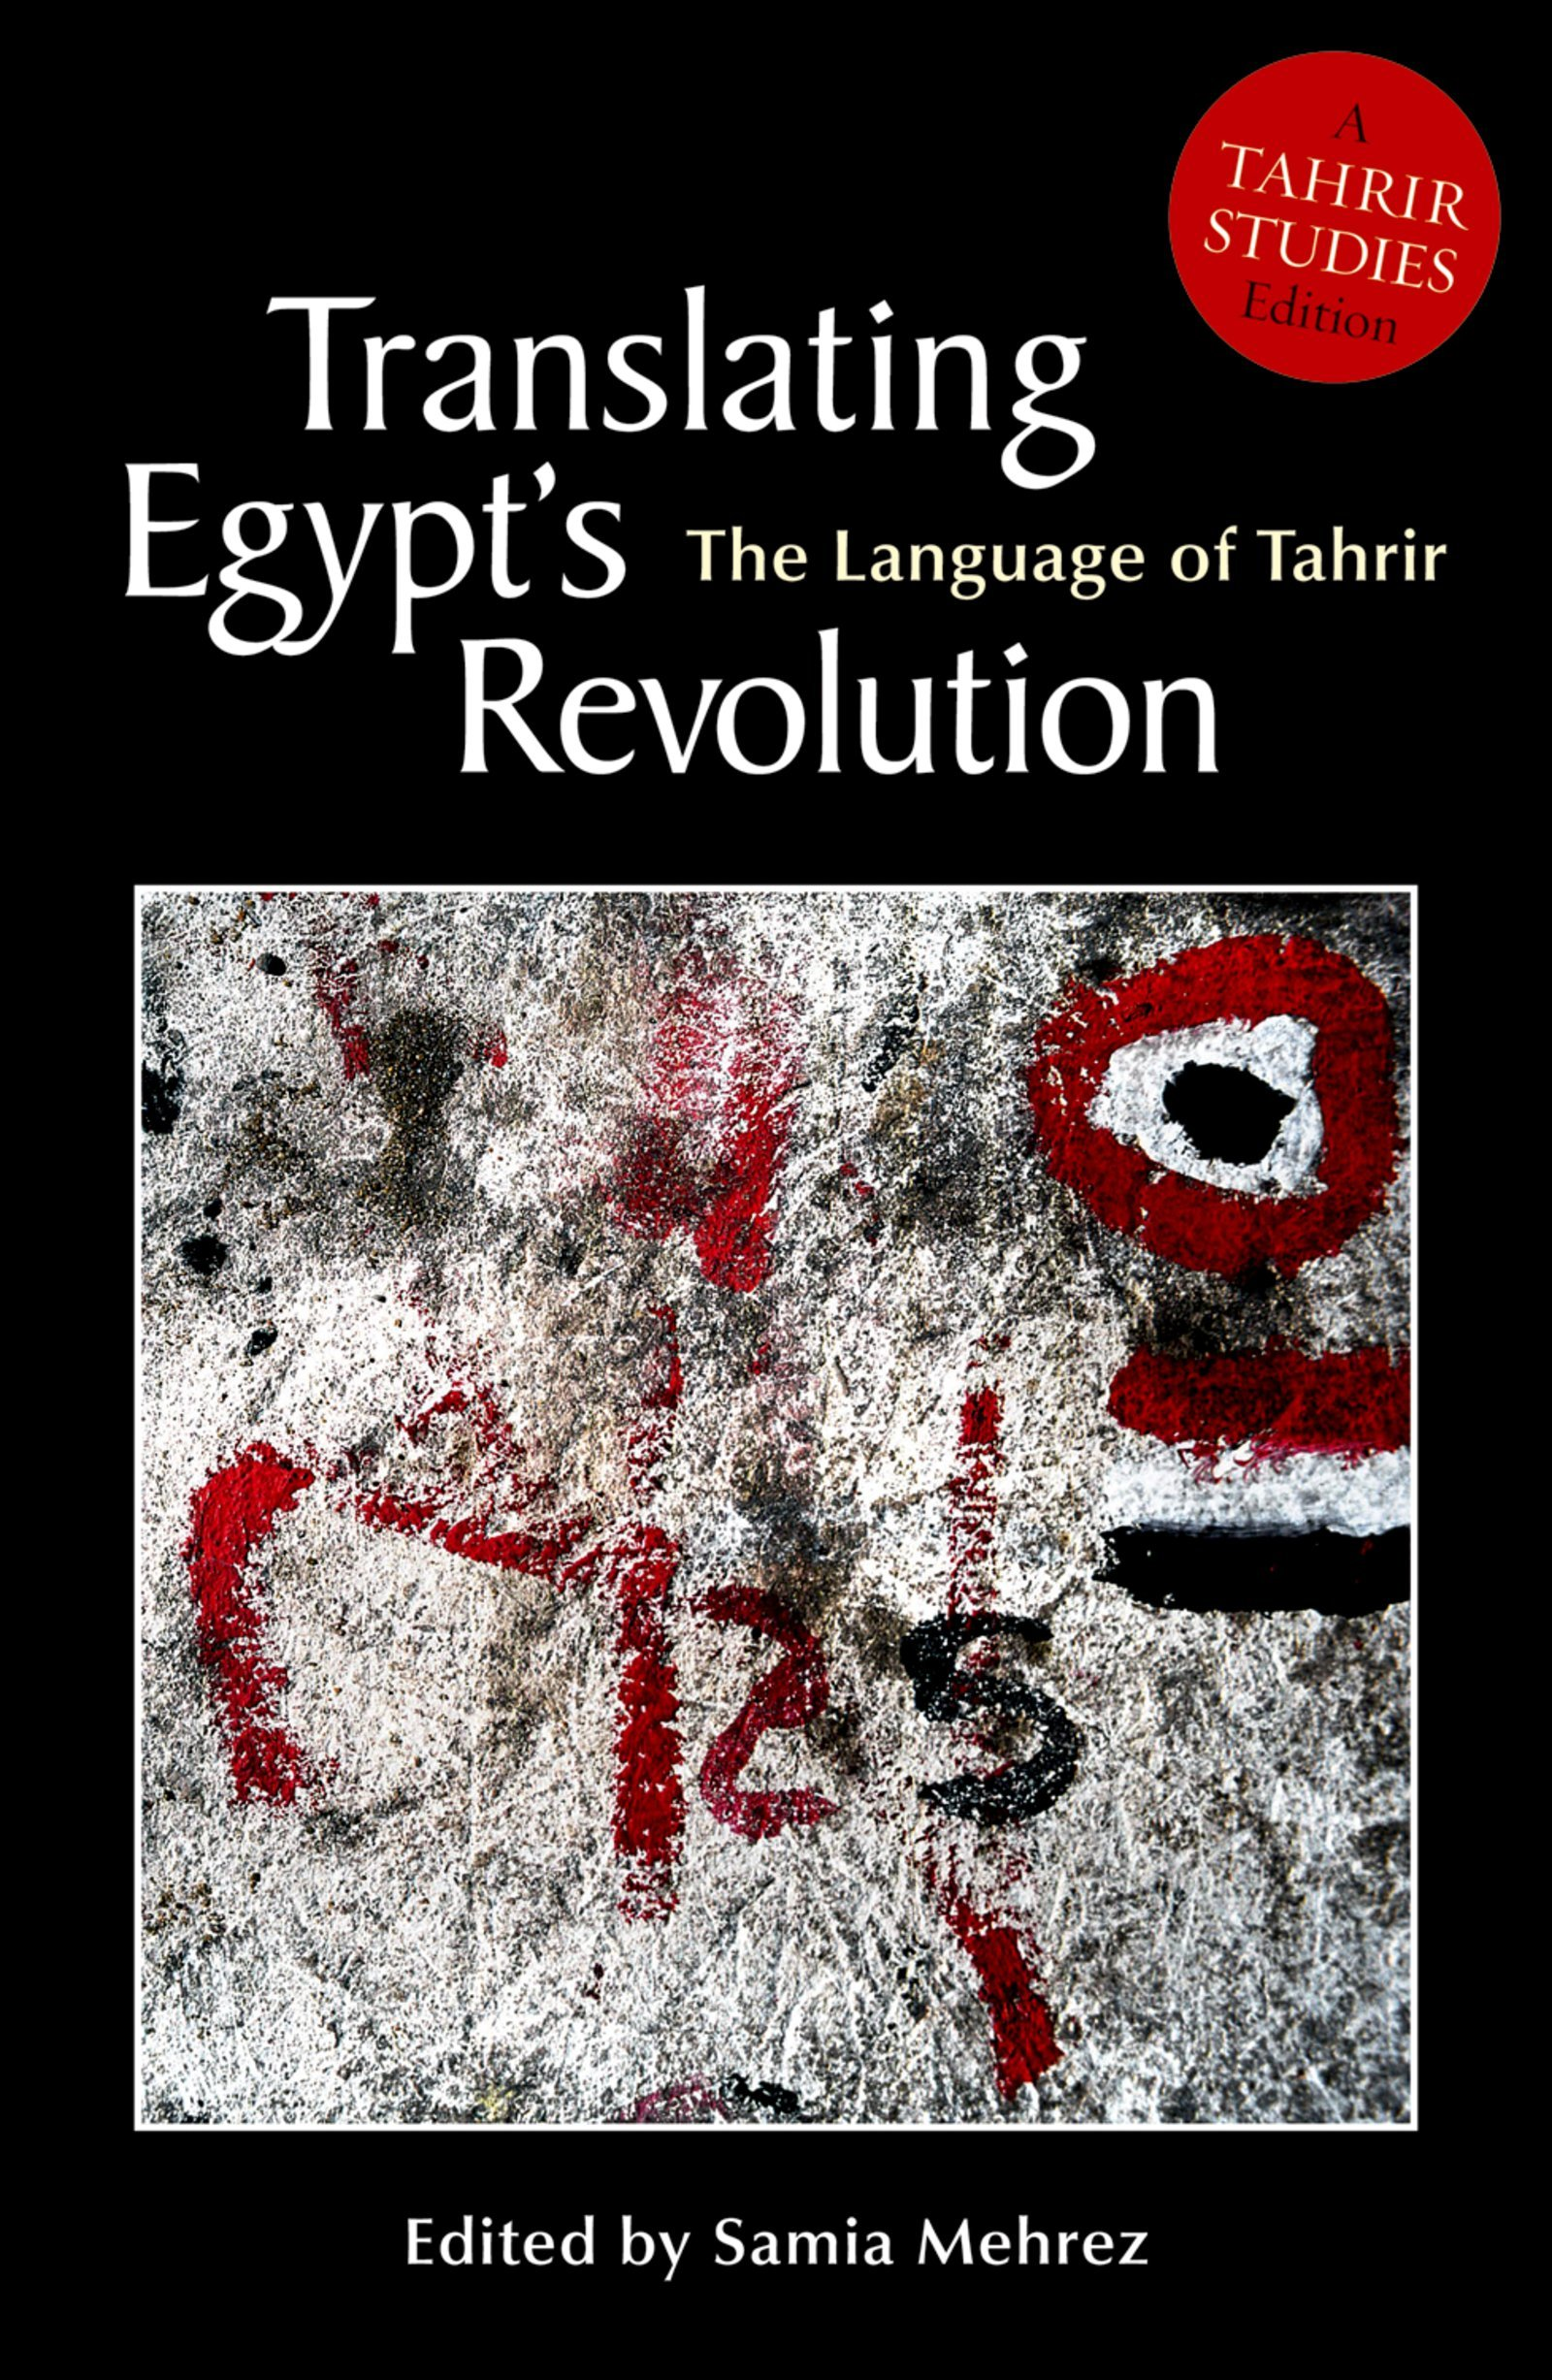 Translating Egypt's Revolution: The Language of Tahrir (Tahrir Studies Editions) by The American University in Cairo Press